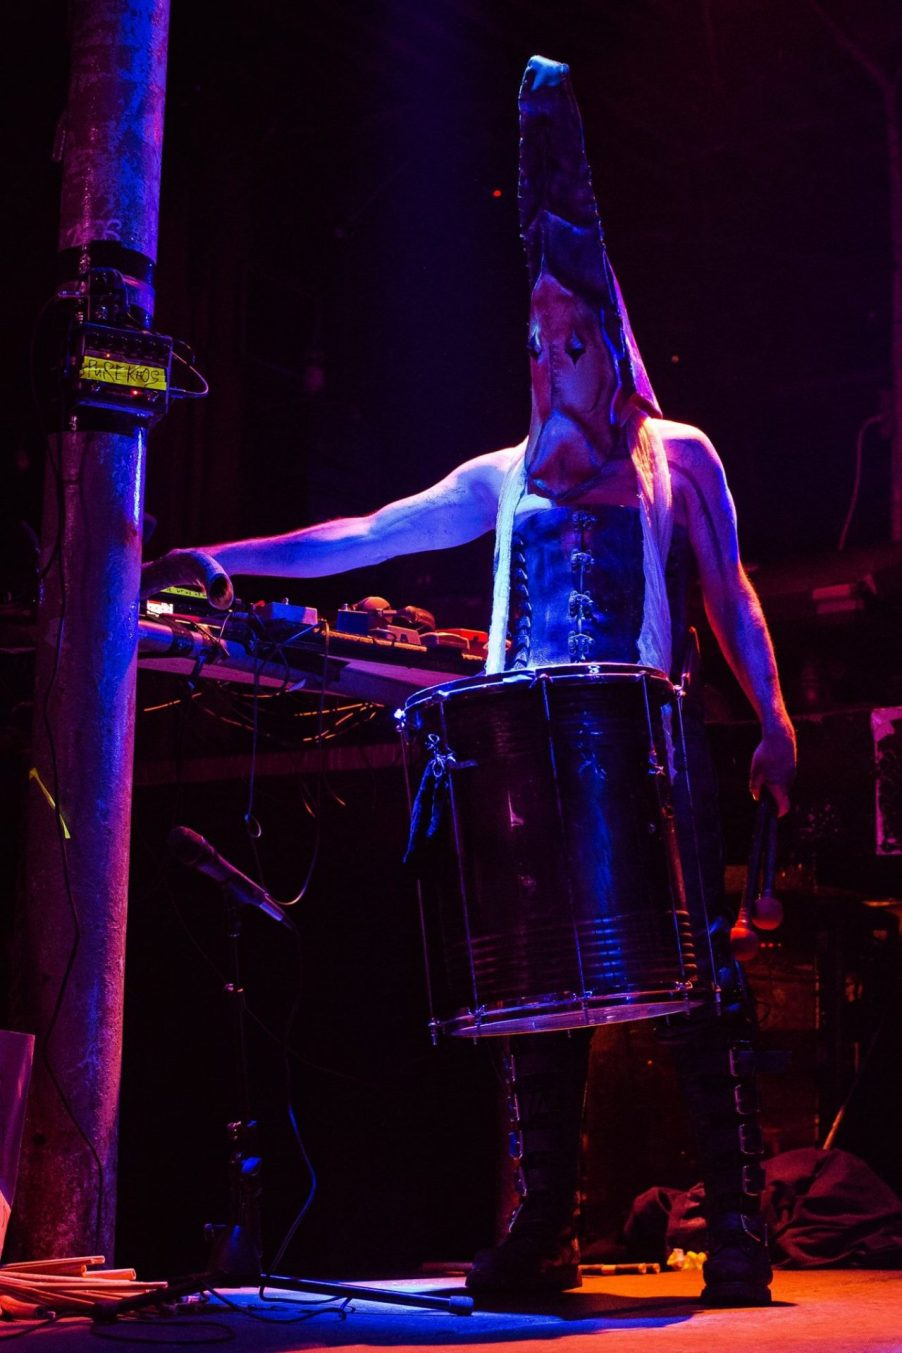 Performance Art, Experimental Music